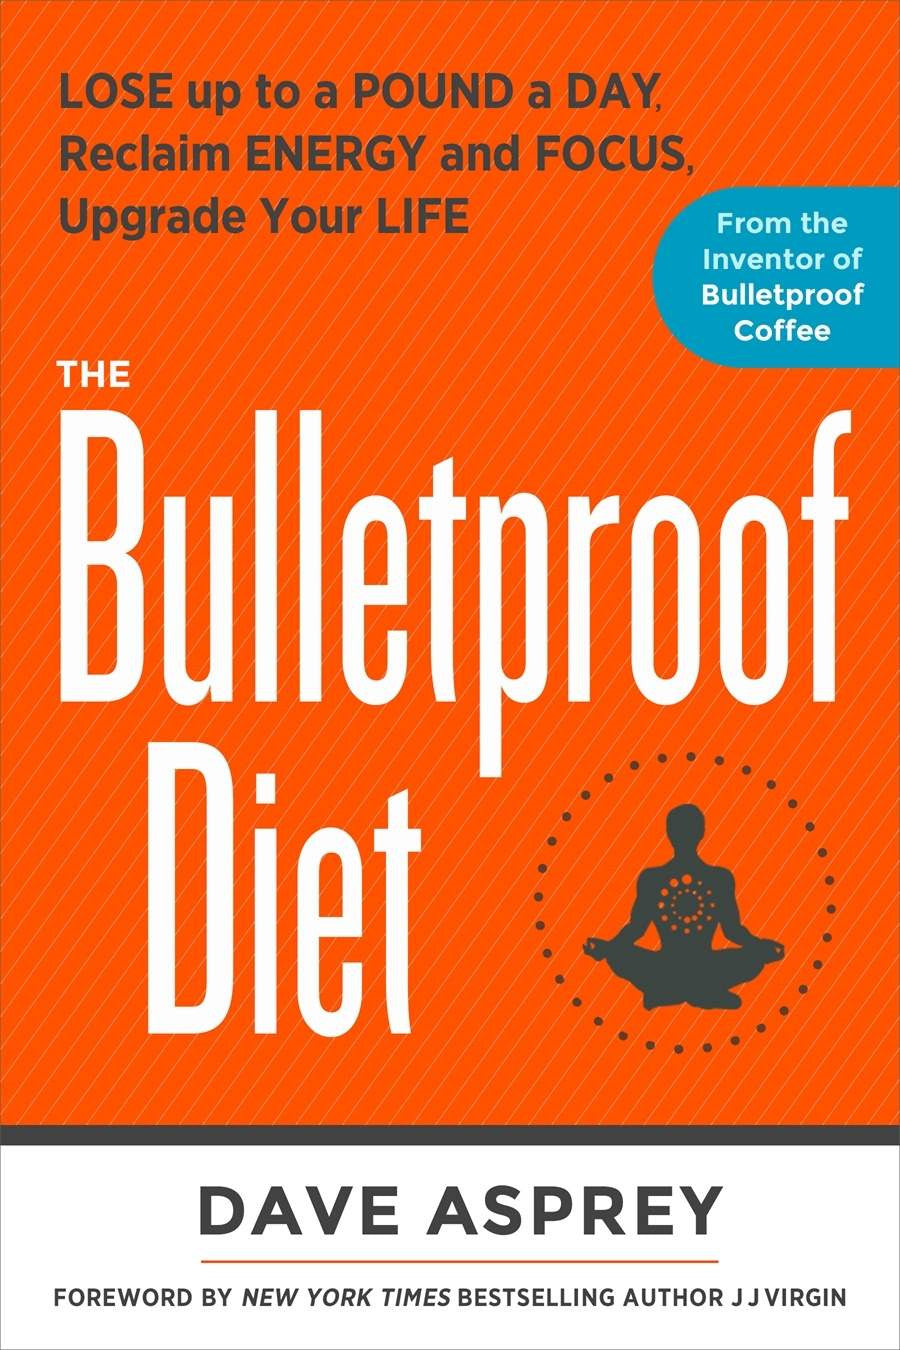 The_Bulletproof_Diet_Book_by_Dave_Asprey_Australia